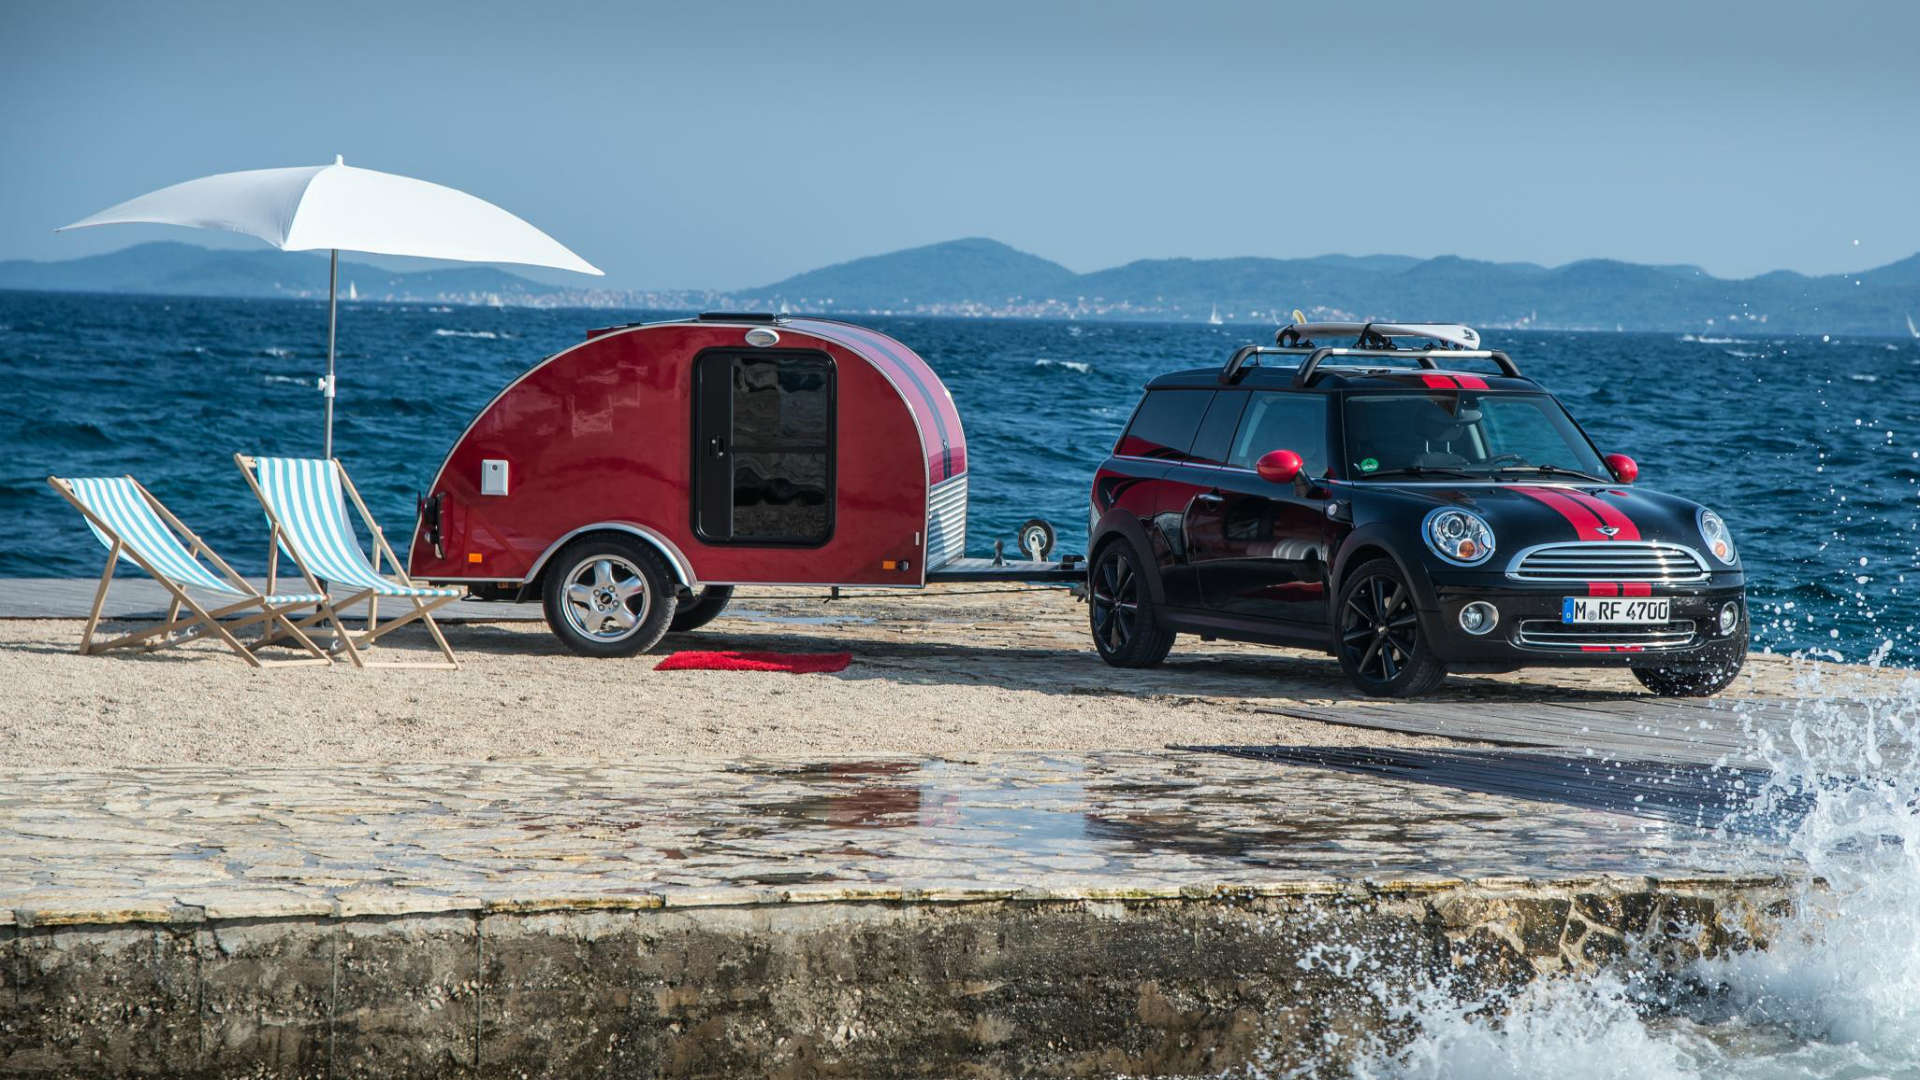 Mini Clubman towing a caravan